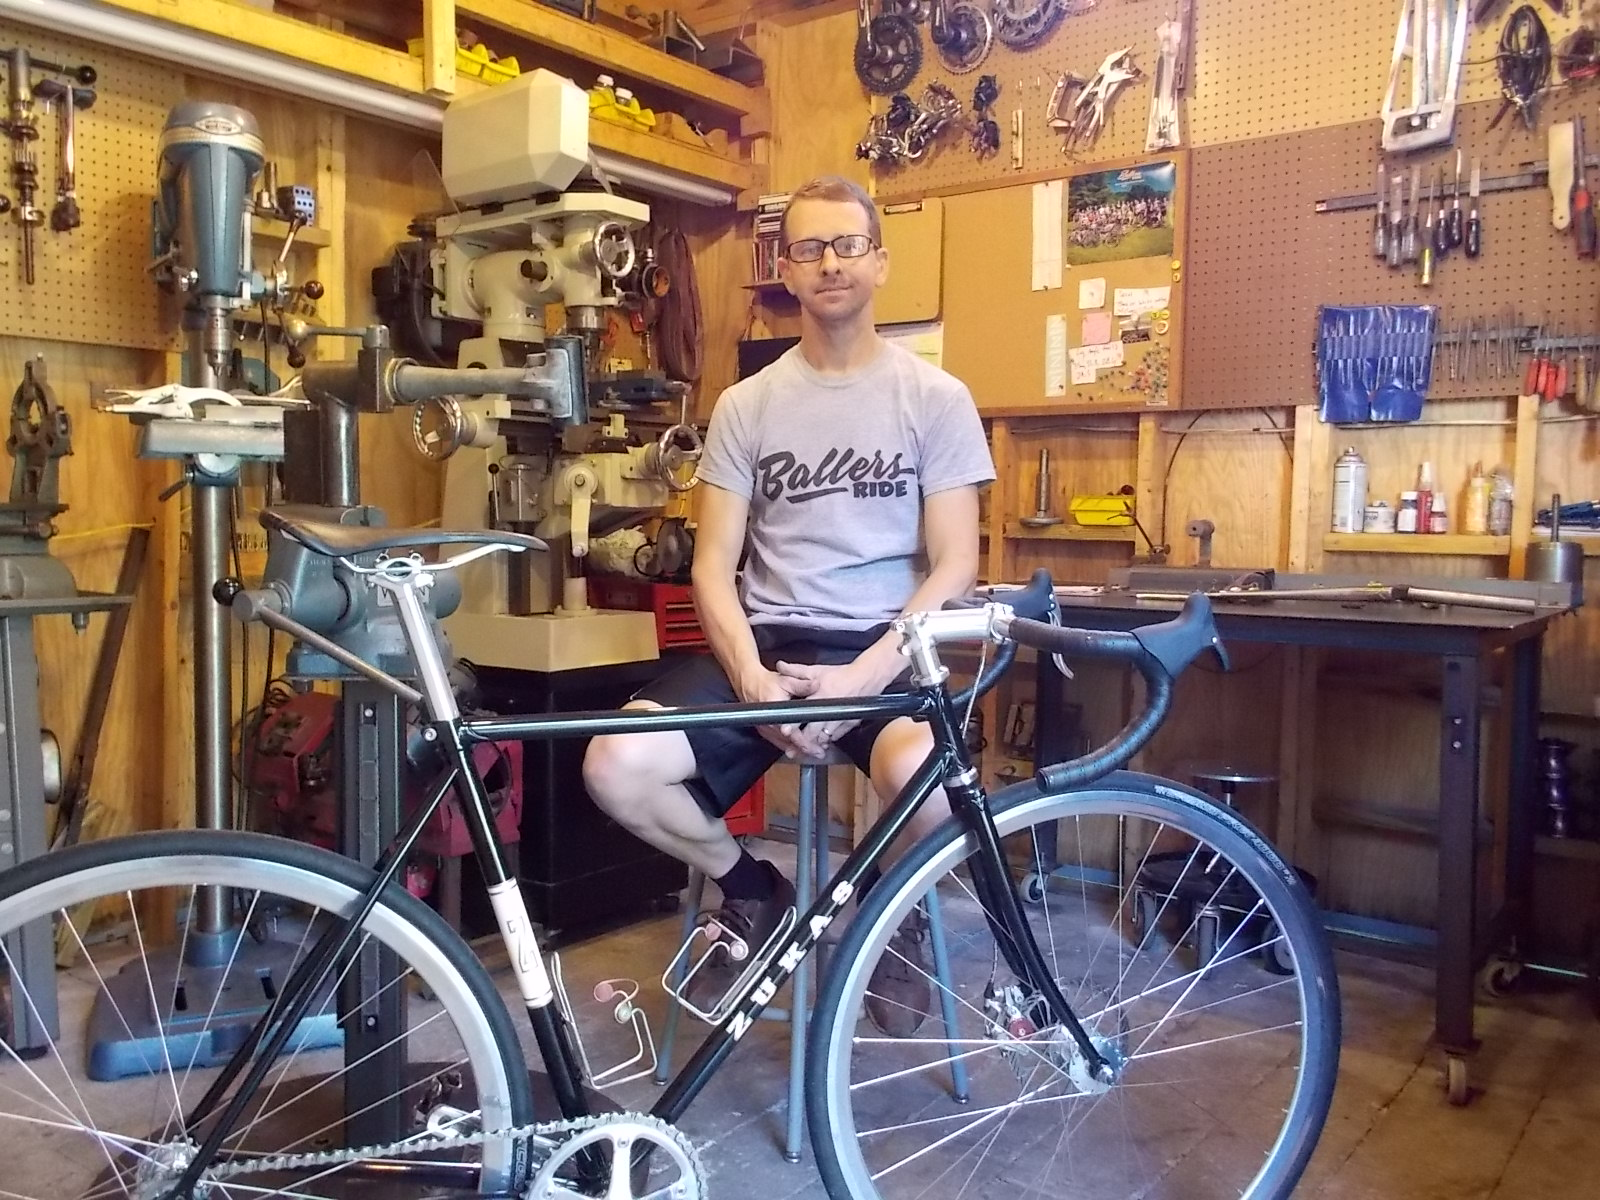 my first bike explores the origins of professional frame builders by going back to the start and looking at the first bike they built